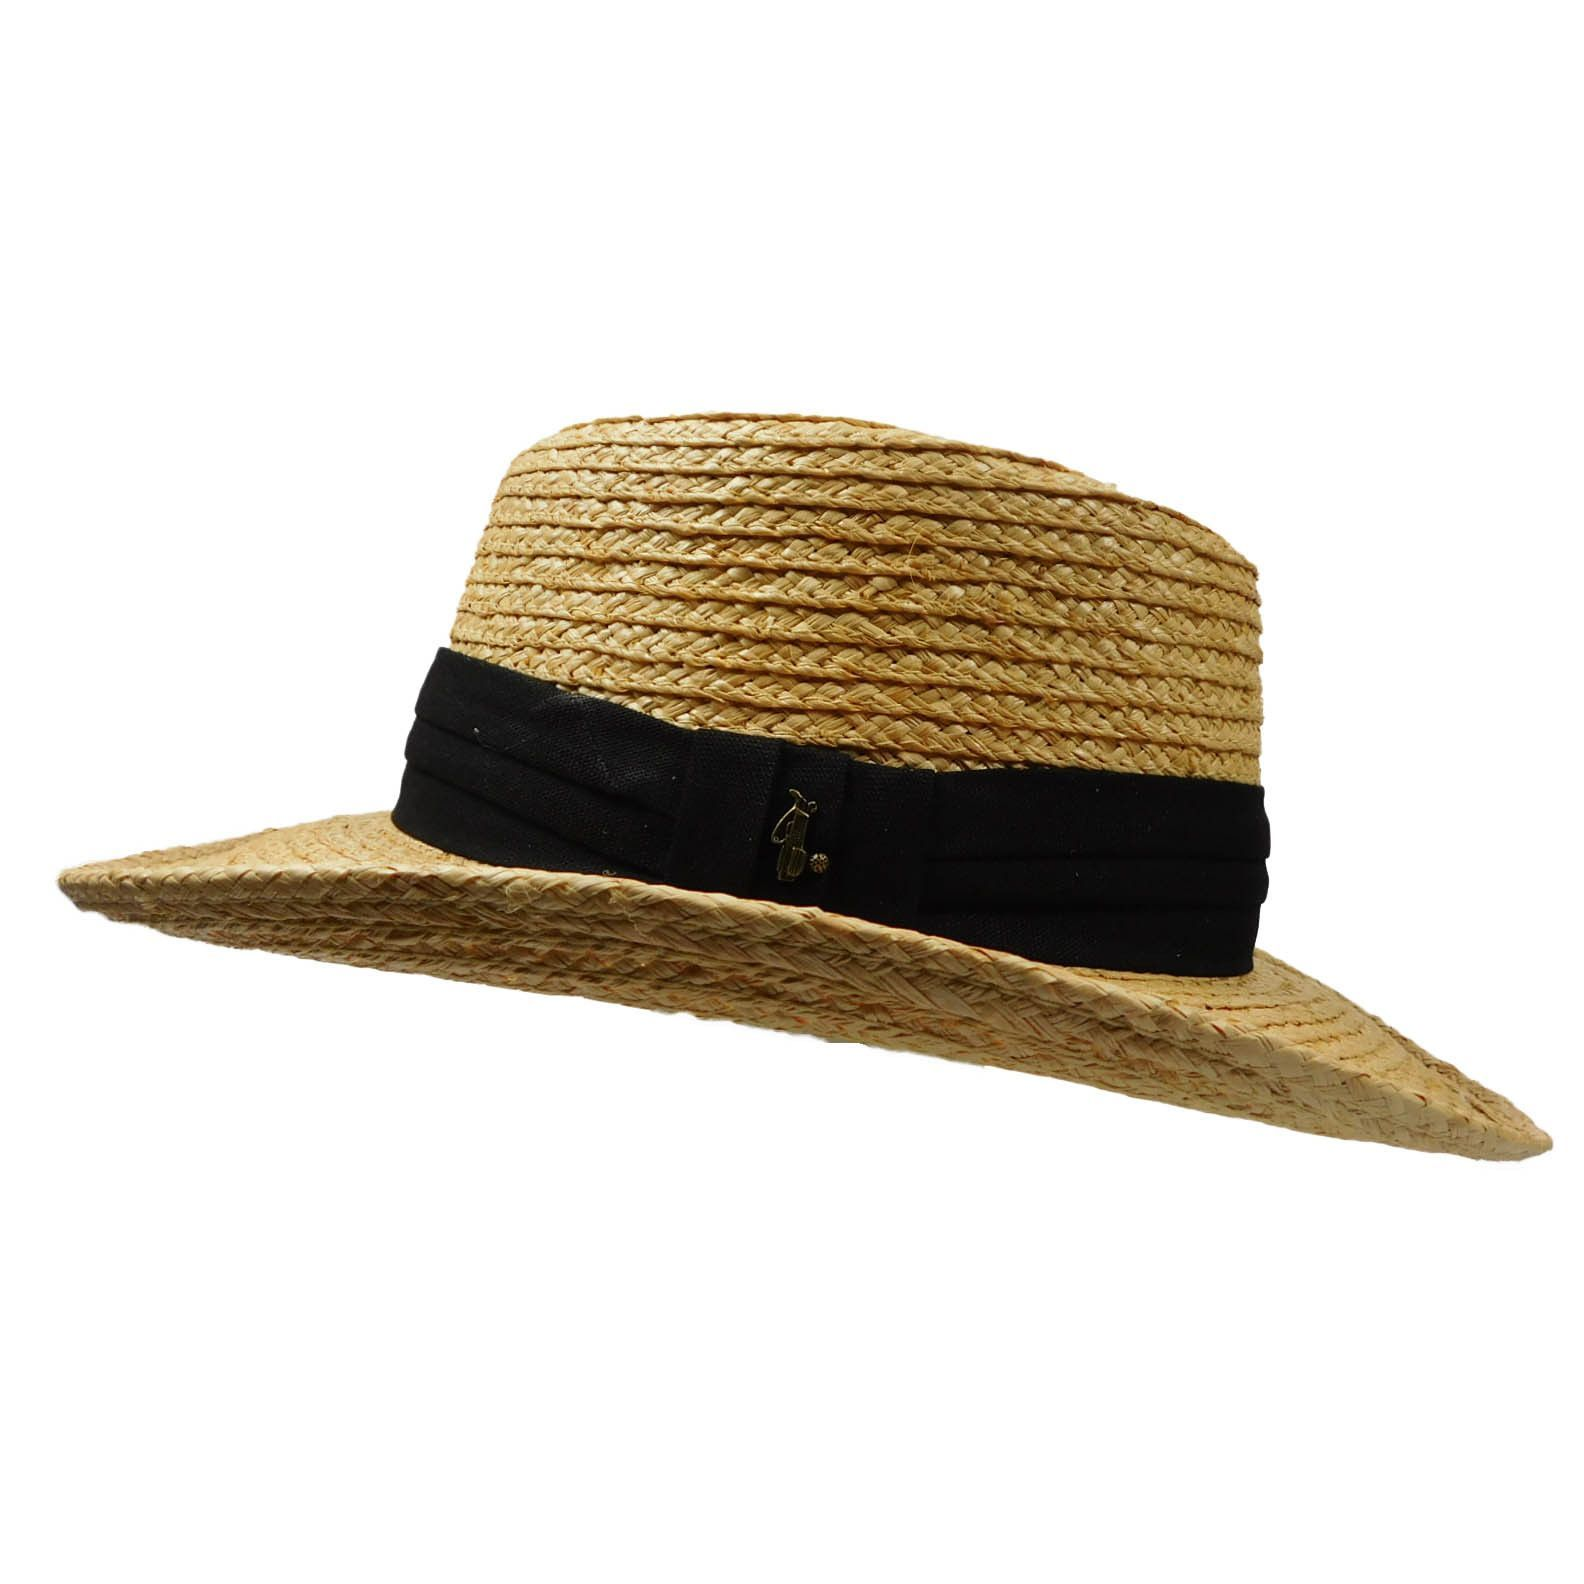 4203a14a37e Natural straw color gambler style hat. Black 3-pleat band with golf  ornament. 8 10 mm raffia braid. 3